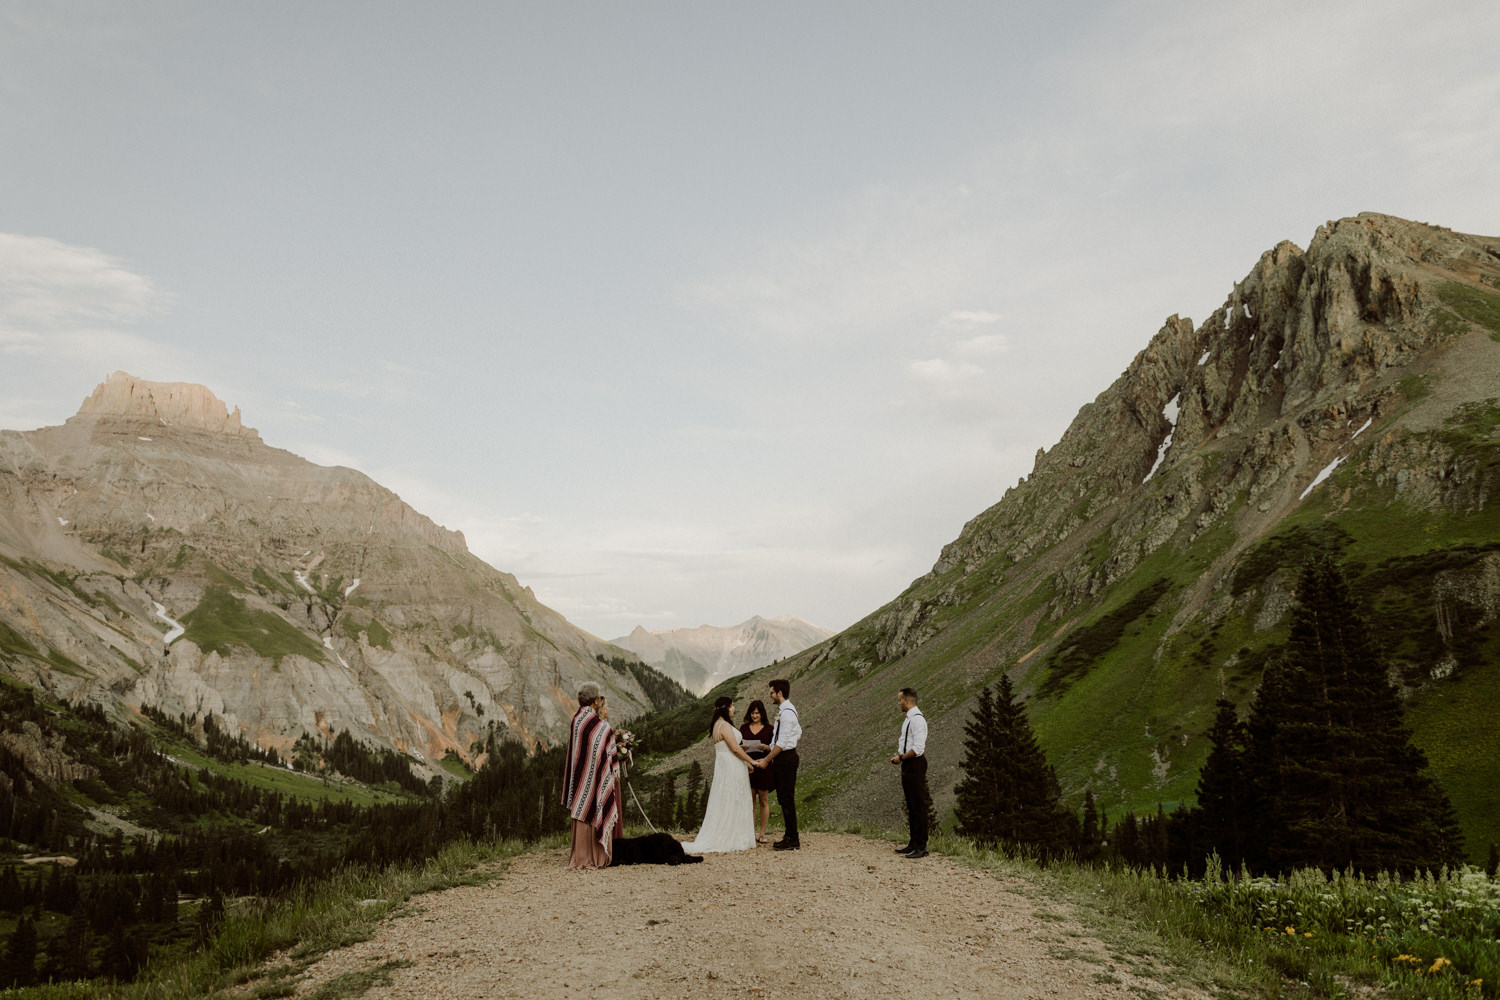 05_ouray-jeeping-elopement-9.jpg